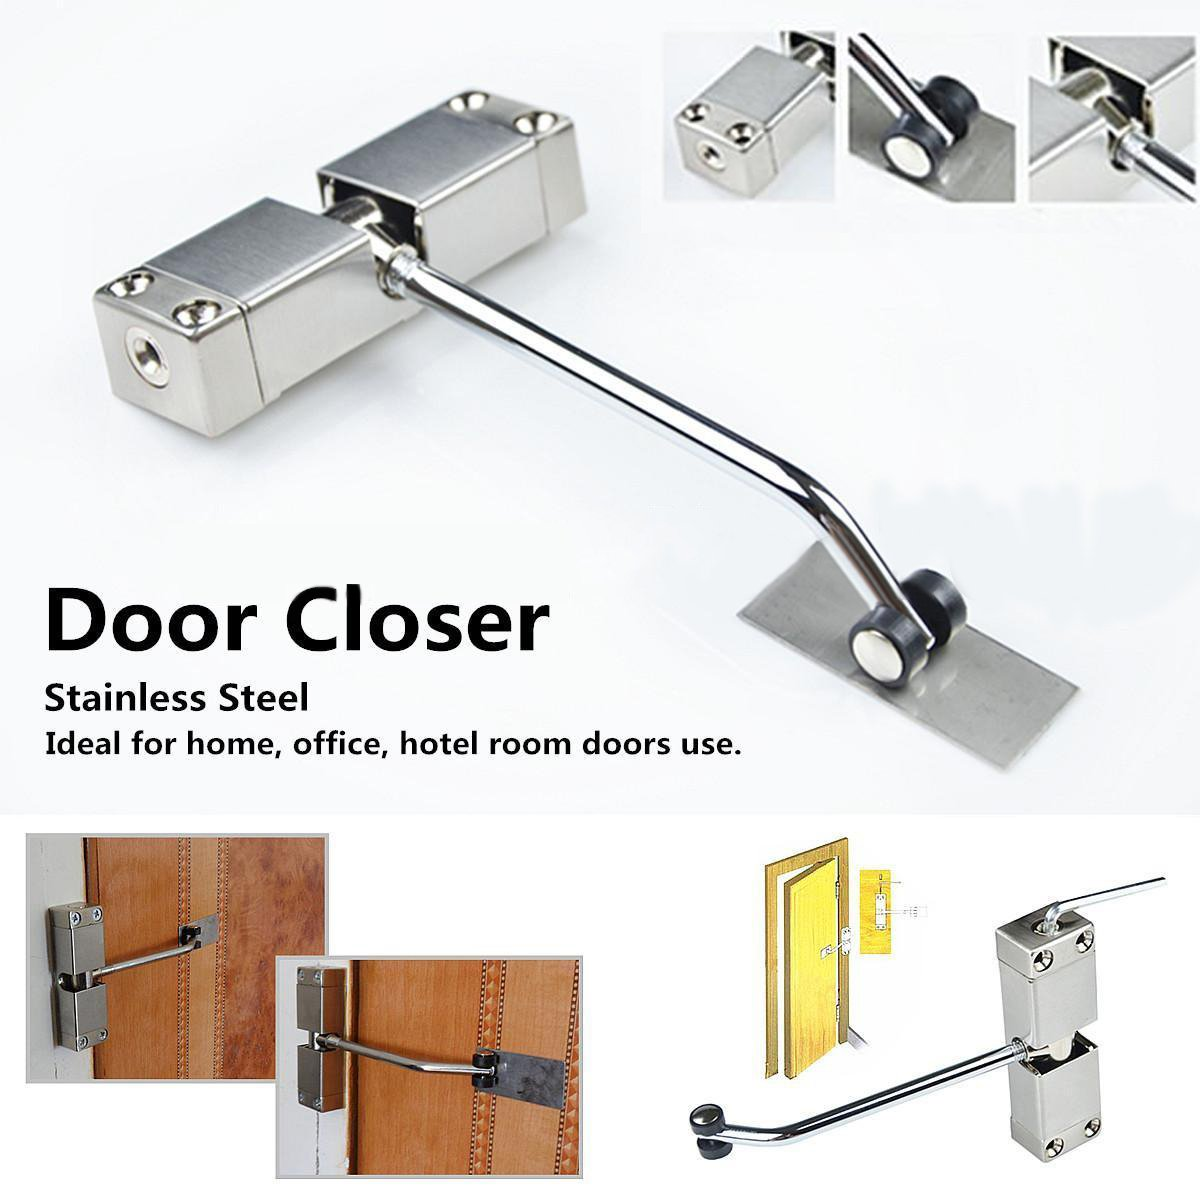 SIXDEFLY Automatic Mounted Spring Door Closer Stainless Steel Adjustable Surface Self Closing for Residential/Commercial Use by SIXDEFLY (Image #5)